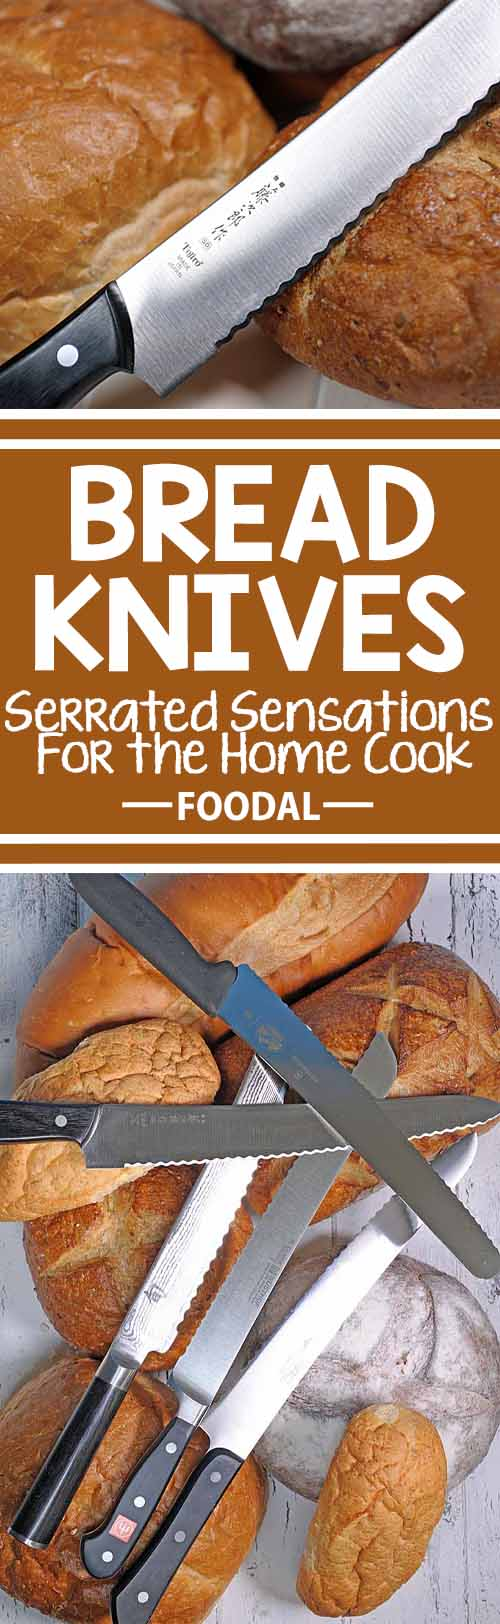 A good bread knife is a versatile blade that makes slicing loaves, tomatoes, and other foods a joyous exercise. But inferior ones create the opposite experience – mountains of crumbs, torn and ripped bread, or massive, uneven slices are all common results of blades with poor designs and cheap materials. Join us for a look at how these sawtooth sensations work, what types of serrations are best, how to sharpen them, and our recommendations for the models that give the best performance – and value! https://foodal.com/kitchen/knives-cutting-boards-kitchen-shears/things-that-cut/bread-knives-reviewed/